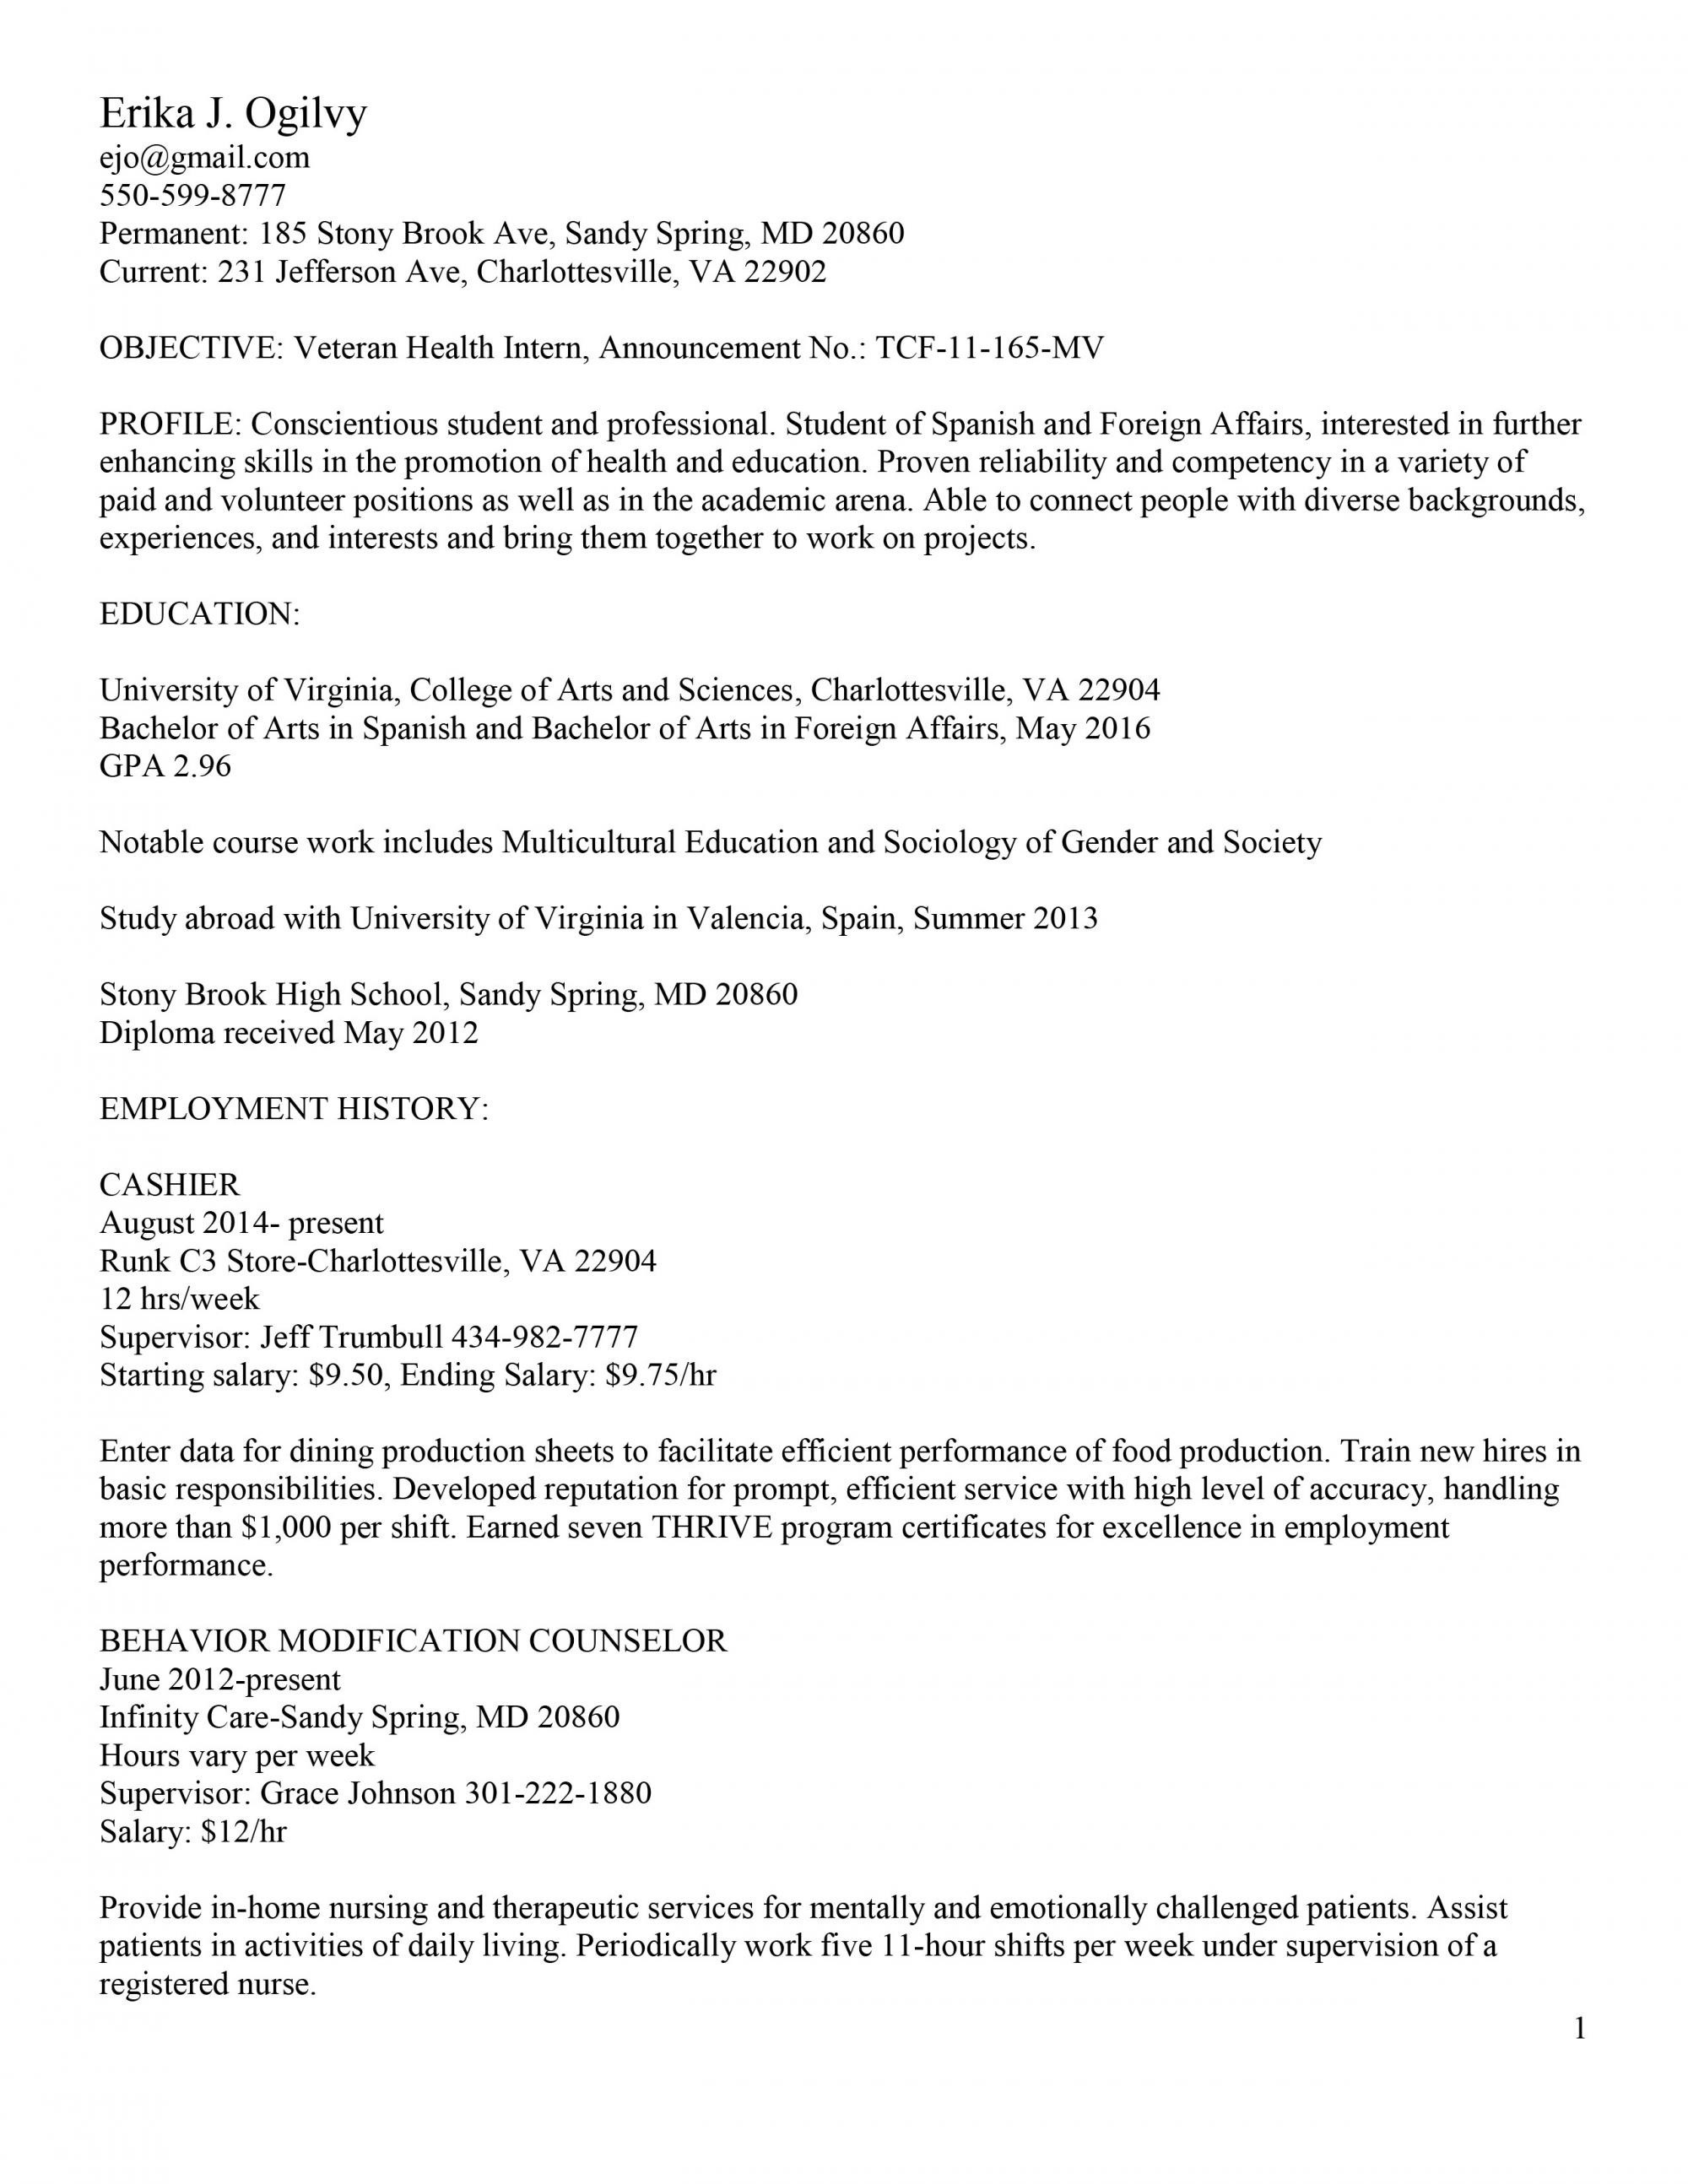 Federal Resume Template 2014 - How to Write A Federal Resume Best How to Write A Federal Resume